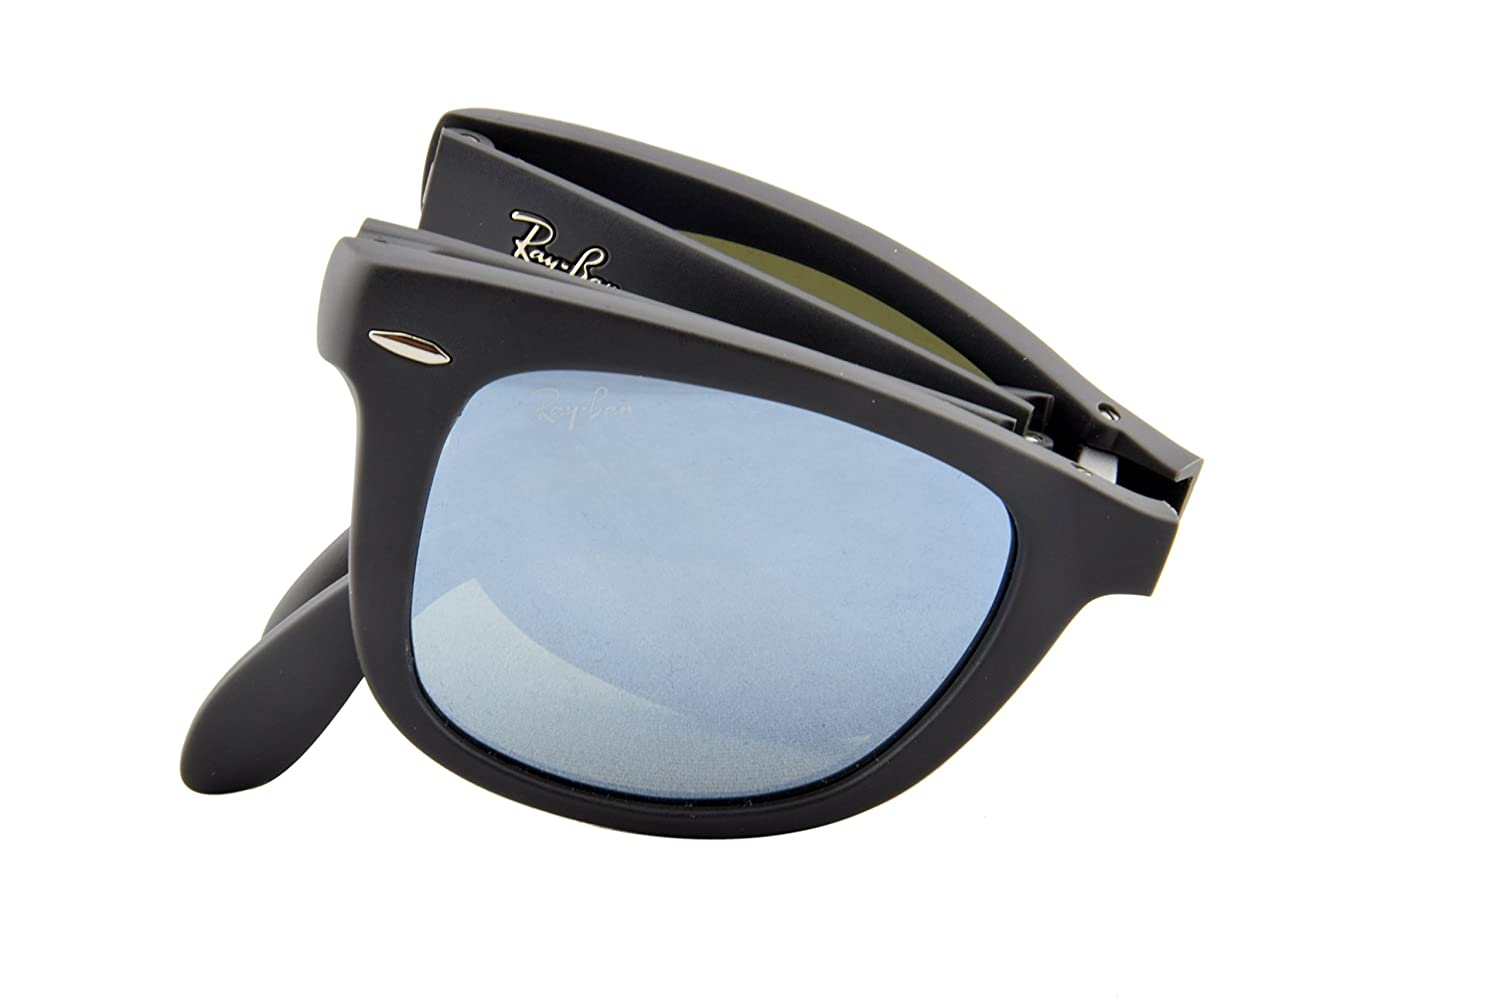 occhiali da sole ray ban amazon